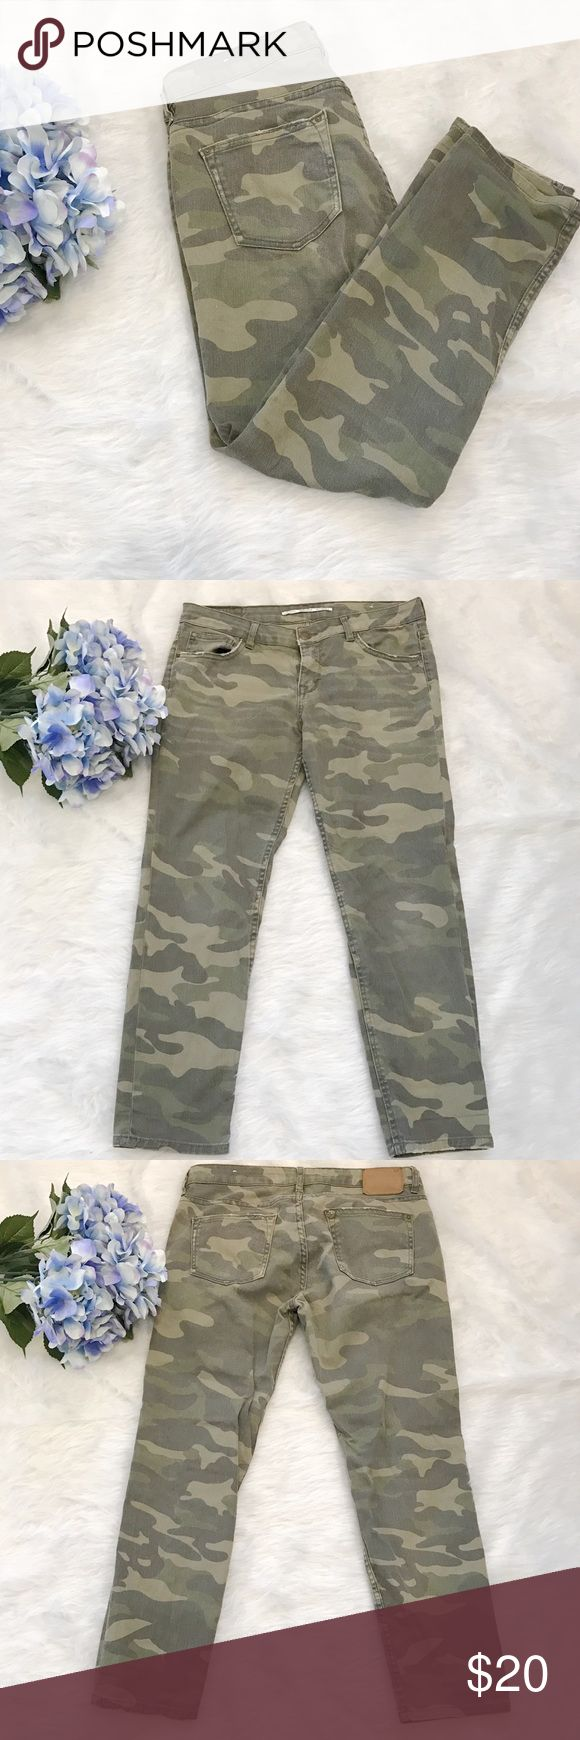 """Zara Camo Skinny Jeans Super cute camo print skinny jeans! In great condition! No trades. Offers welcomed!                                      MEASUREMENTS: inseam 25.5"""", waist 16"""", rise 8"""". Zara Jeans Skinny"""